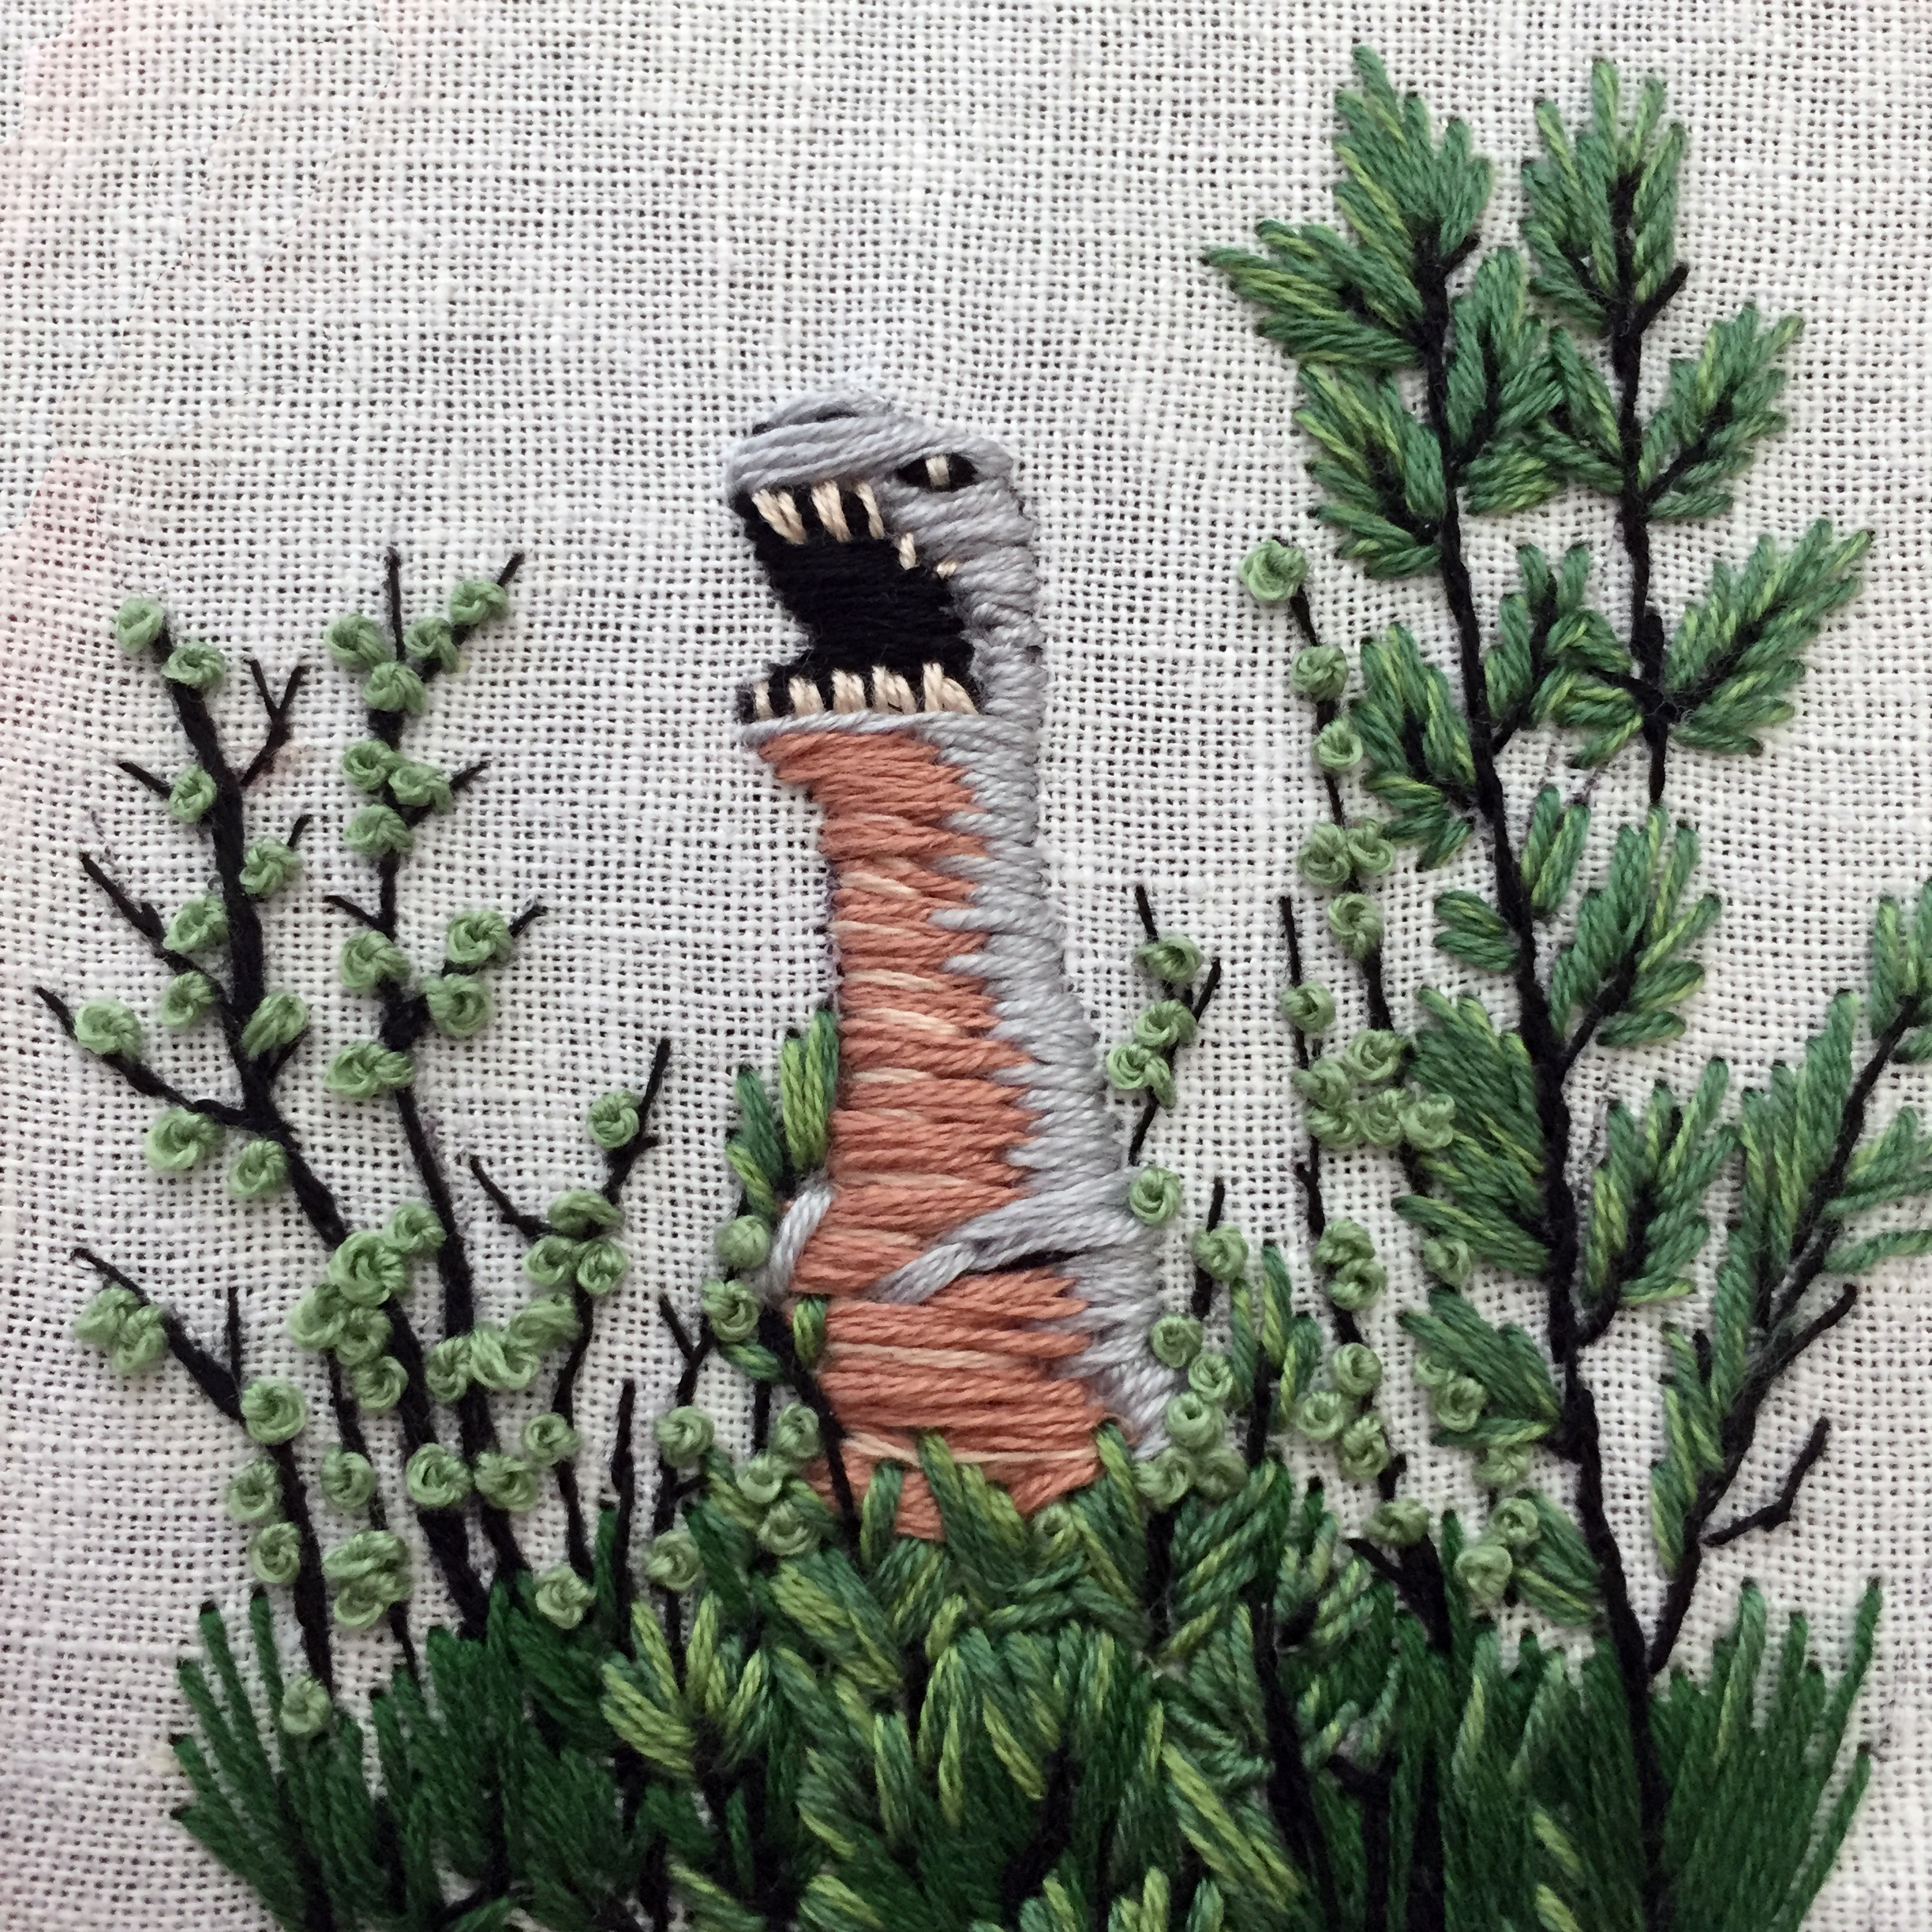 If you are finding foliage boring — just add a dinosaur!